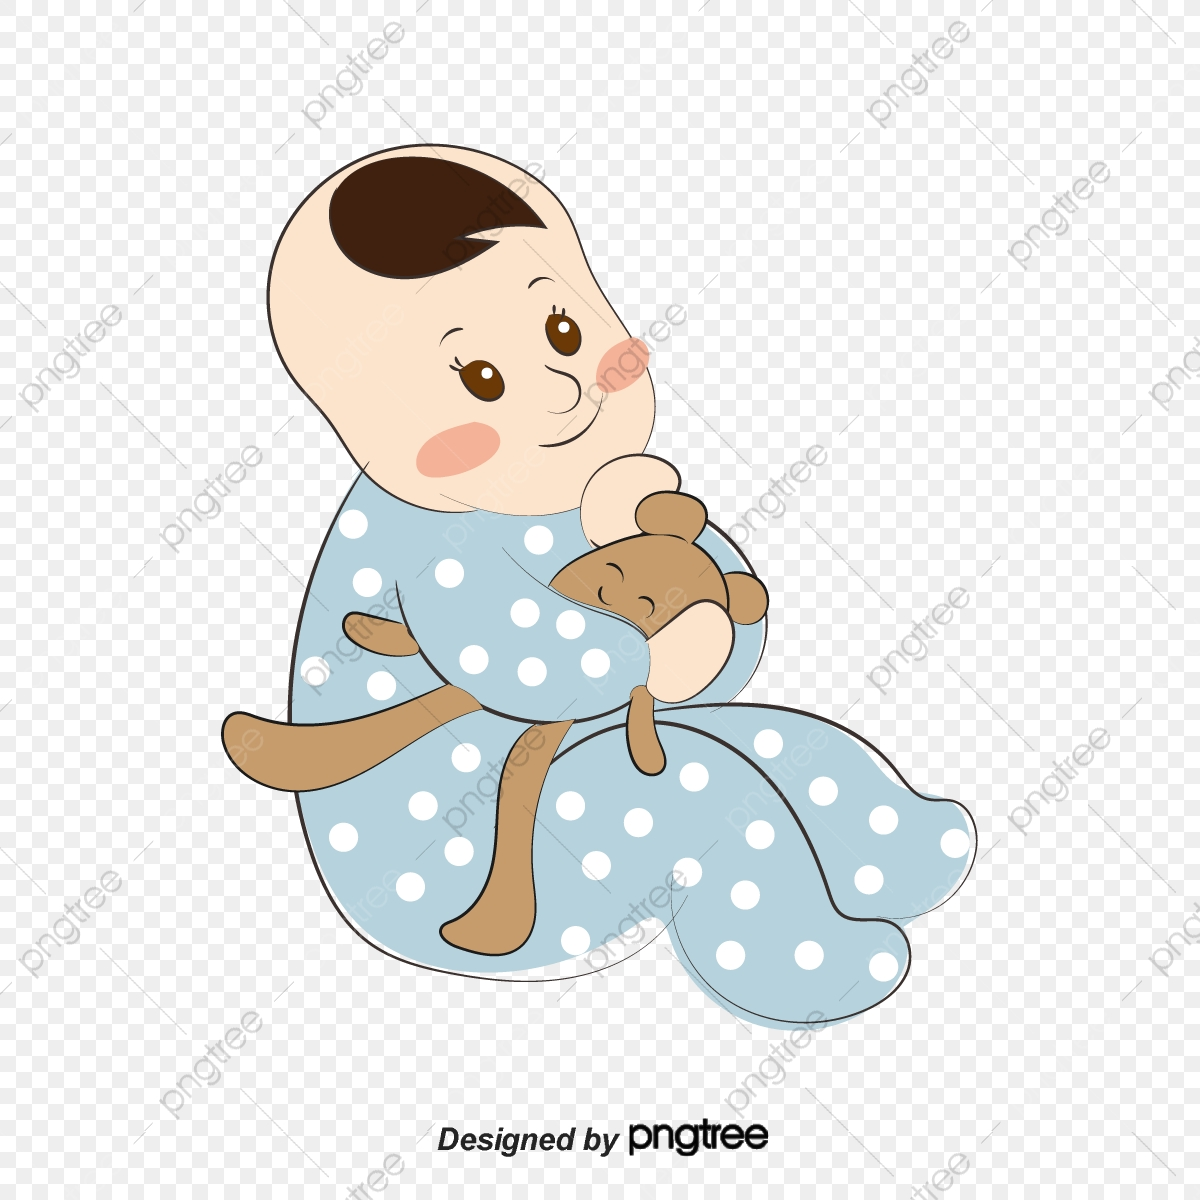 Holding Baby Baby Baby Baby Vector Baby Clipart Short Hair Baby Png And Vector With Transparent Background For Free Download